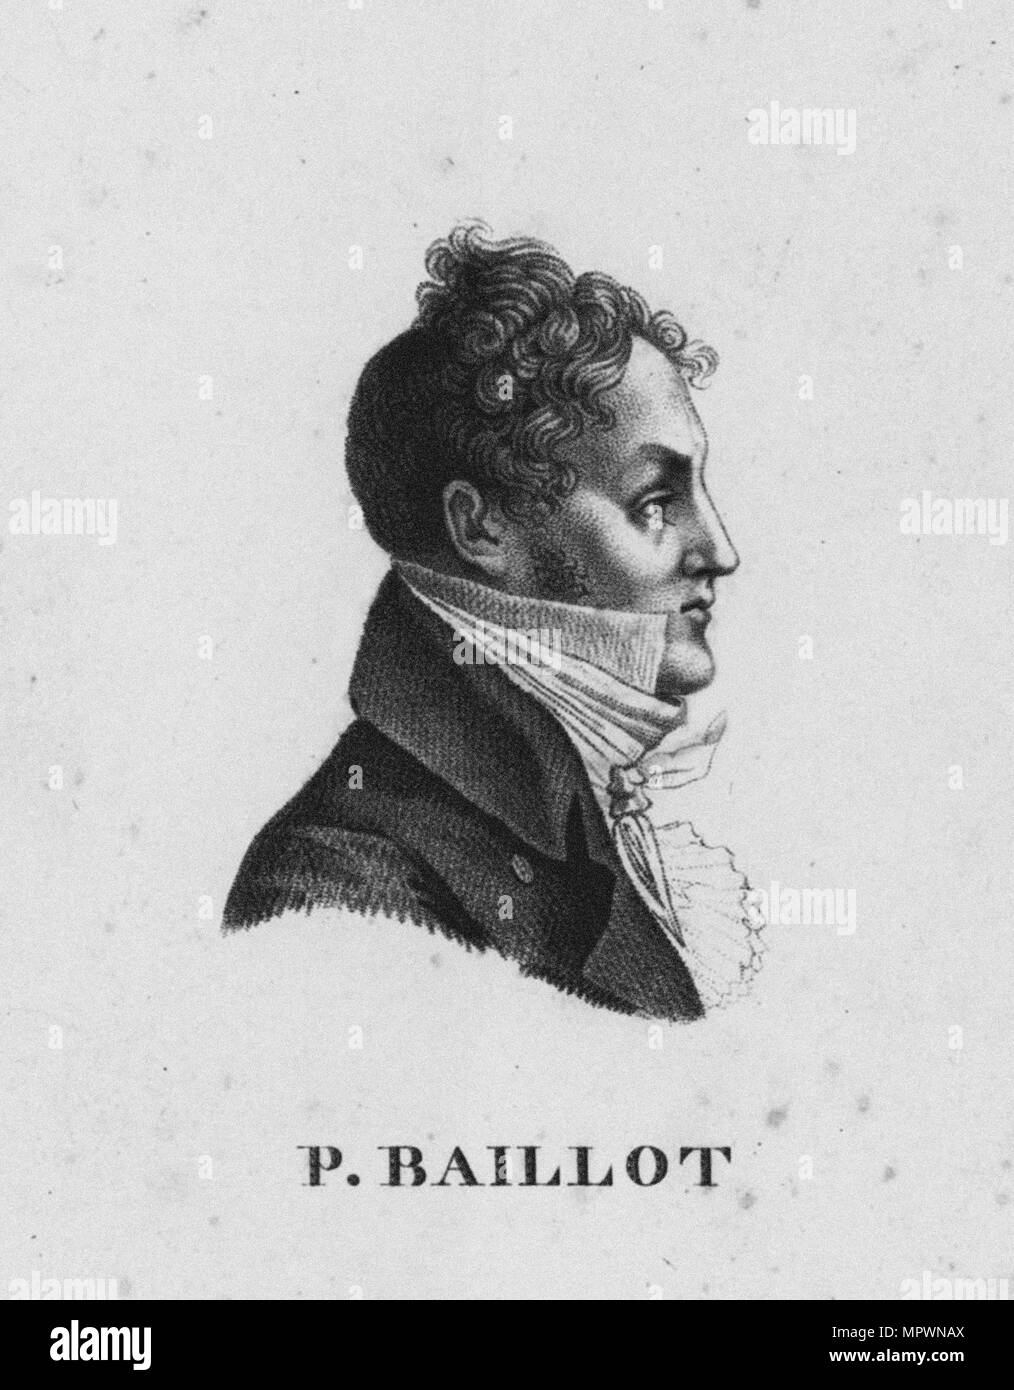 Portrait of the violinist and composer Pierre Baillot (1771-1842), 1800s. - Stock Image